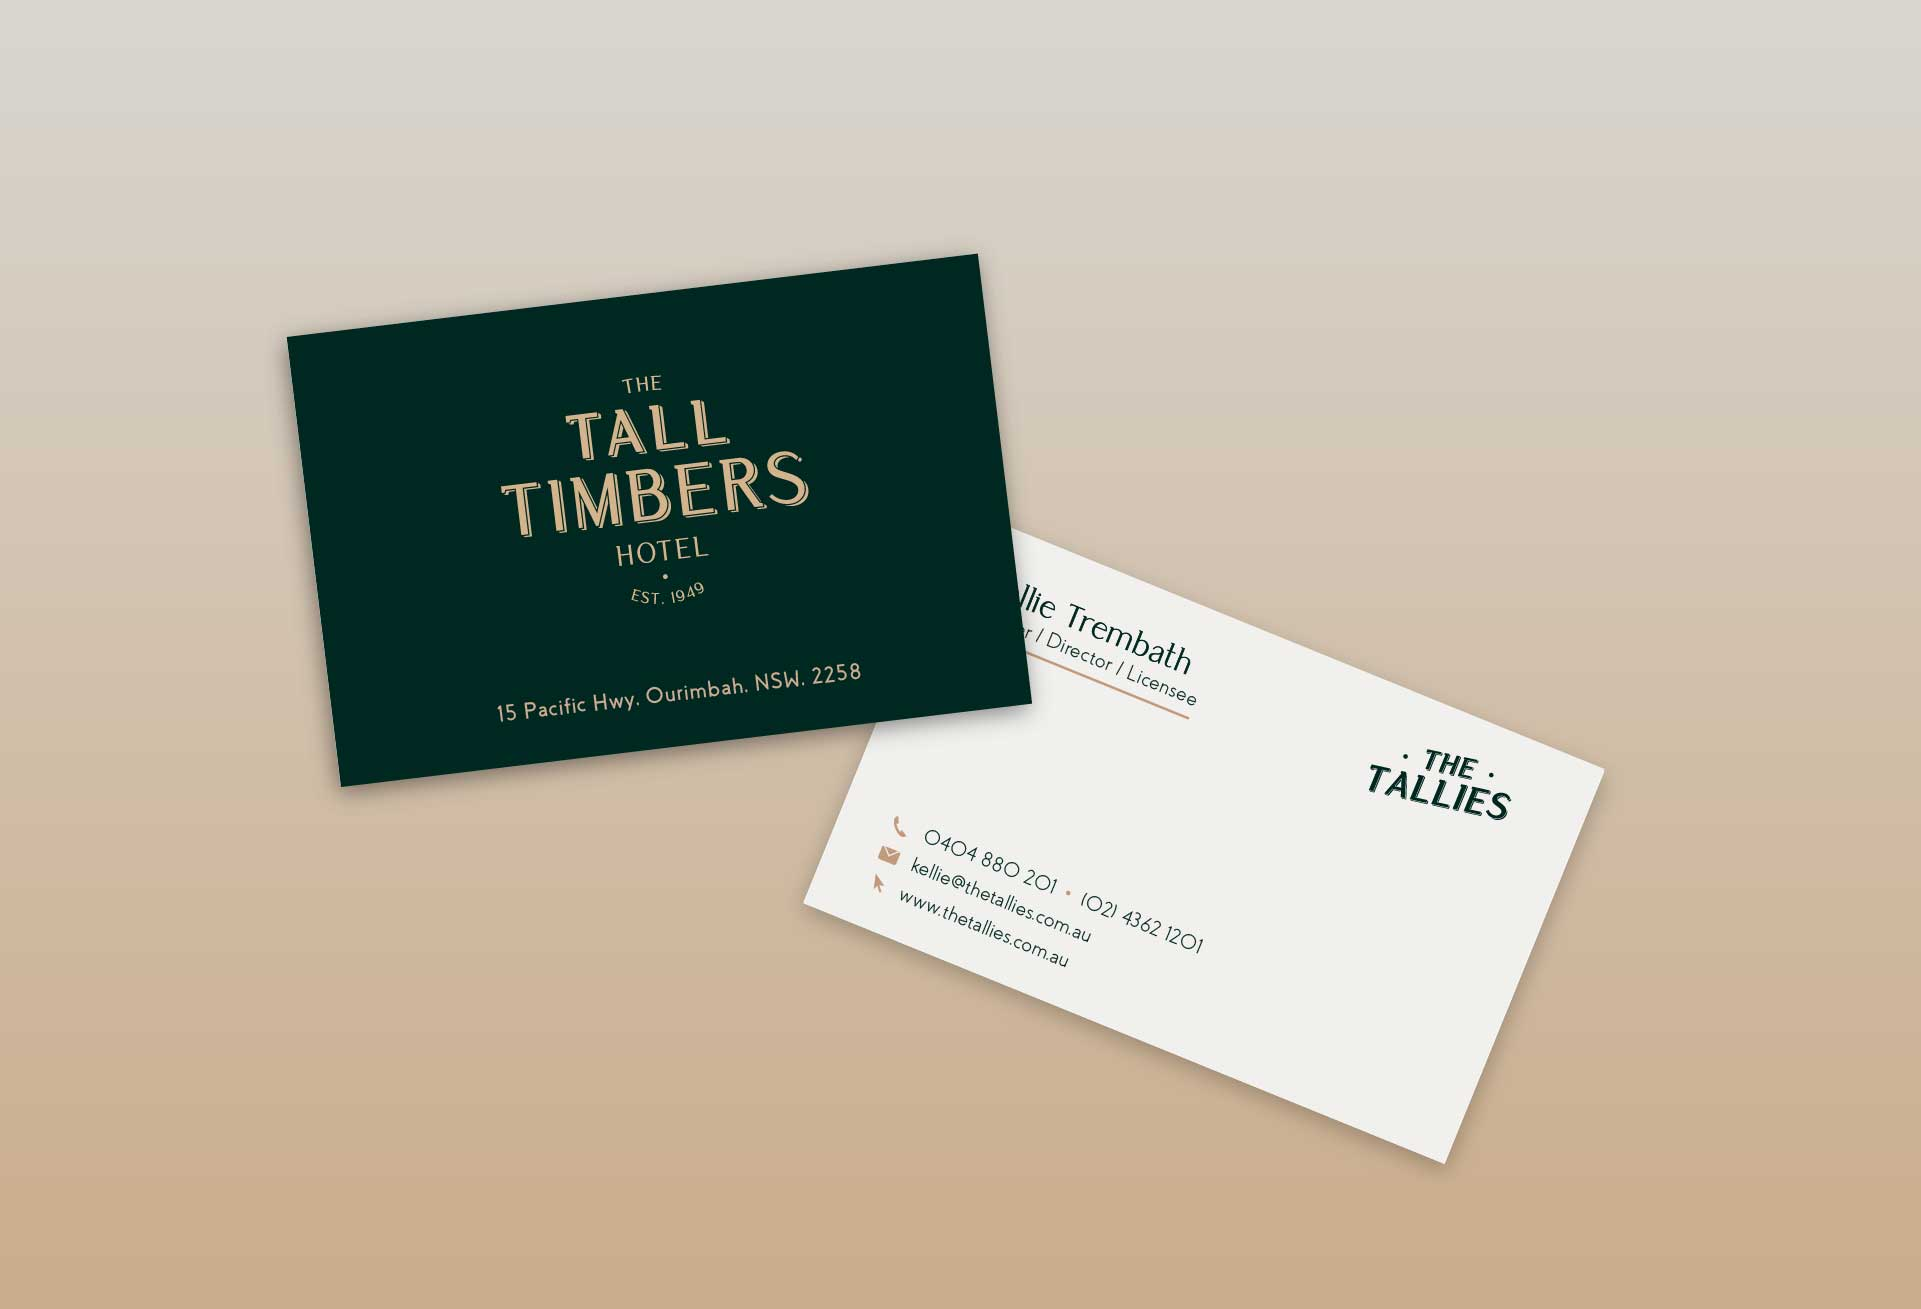 Business card design for The Tall Timbers Hotel